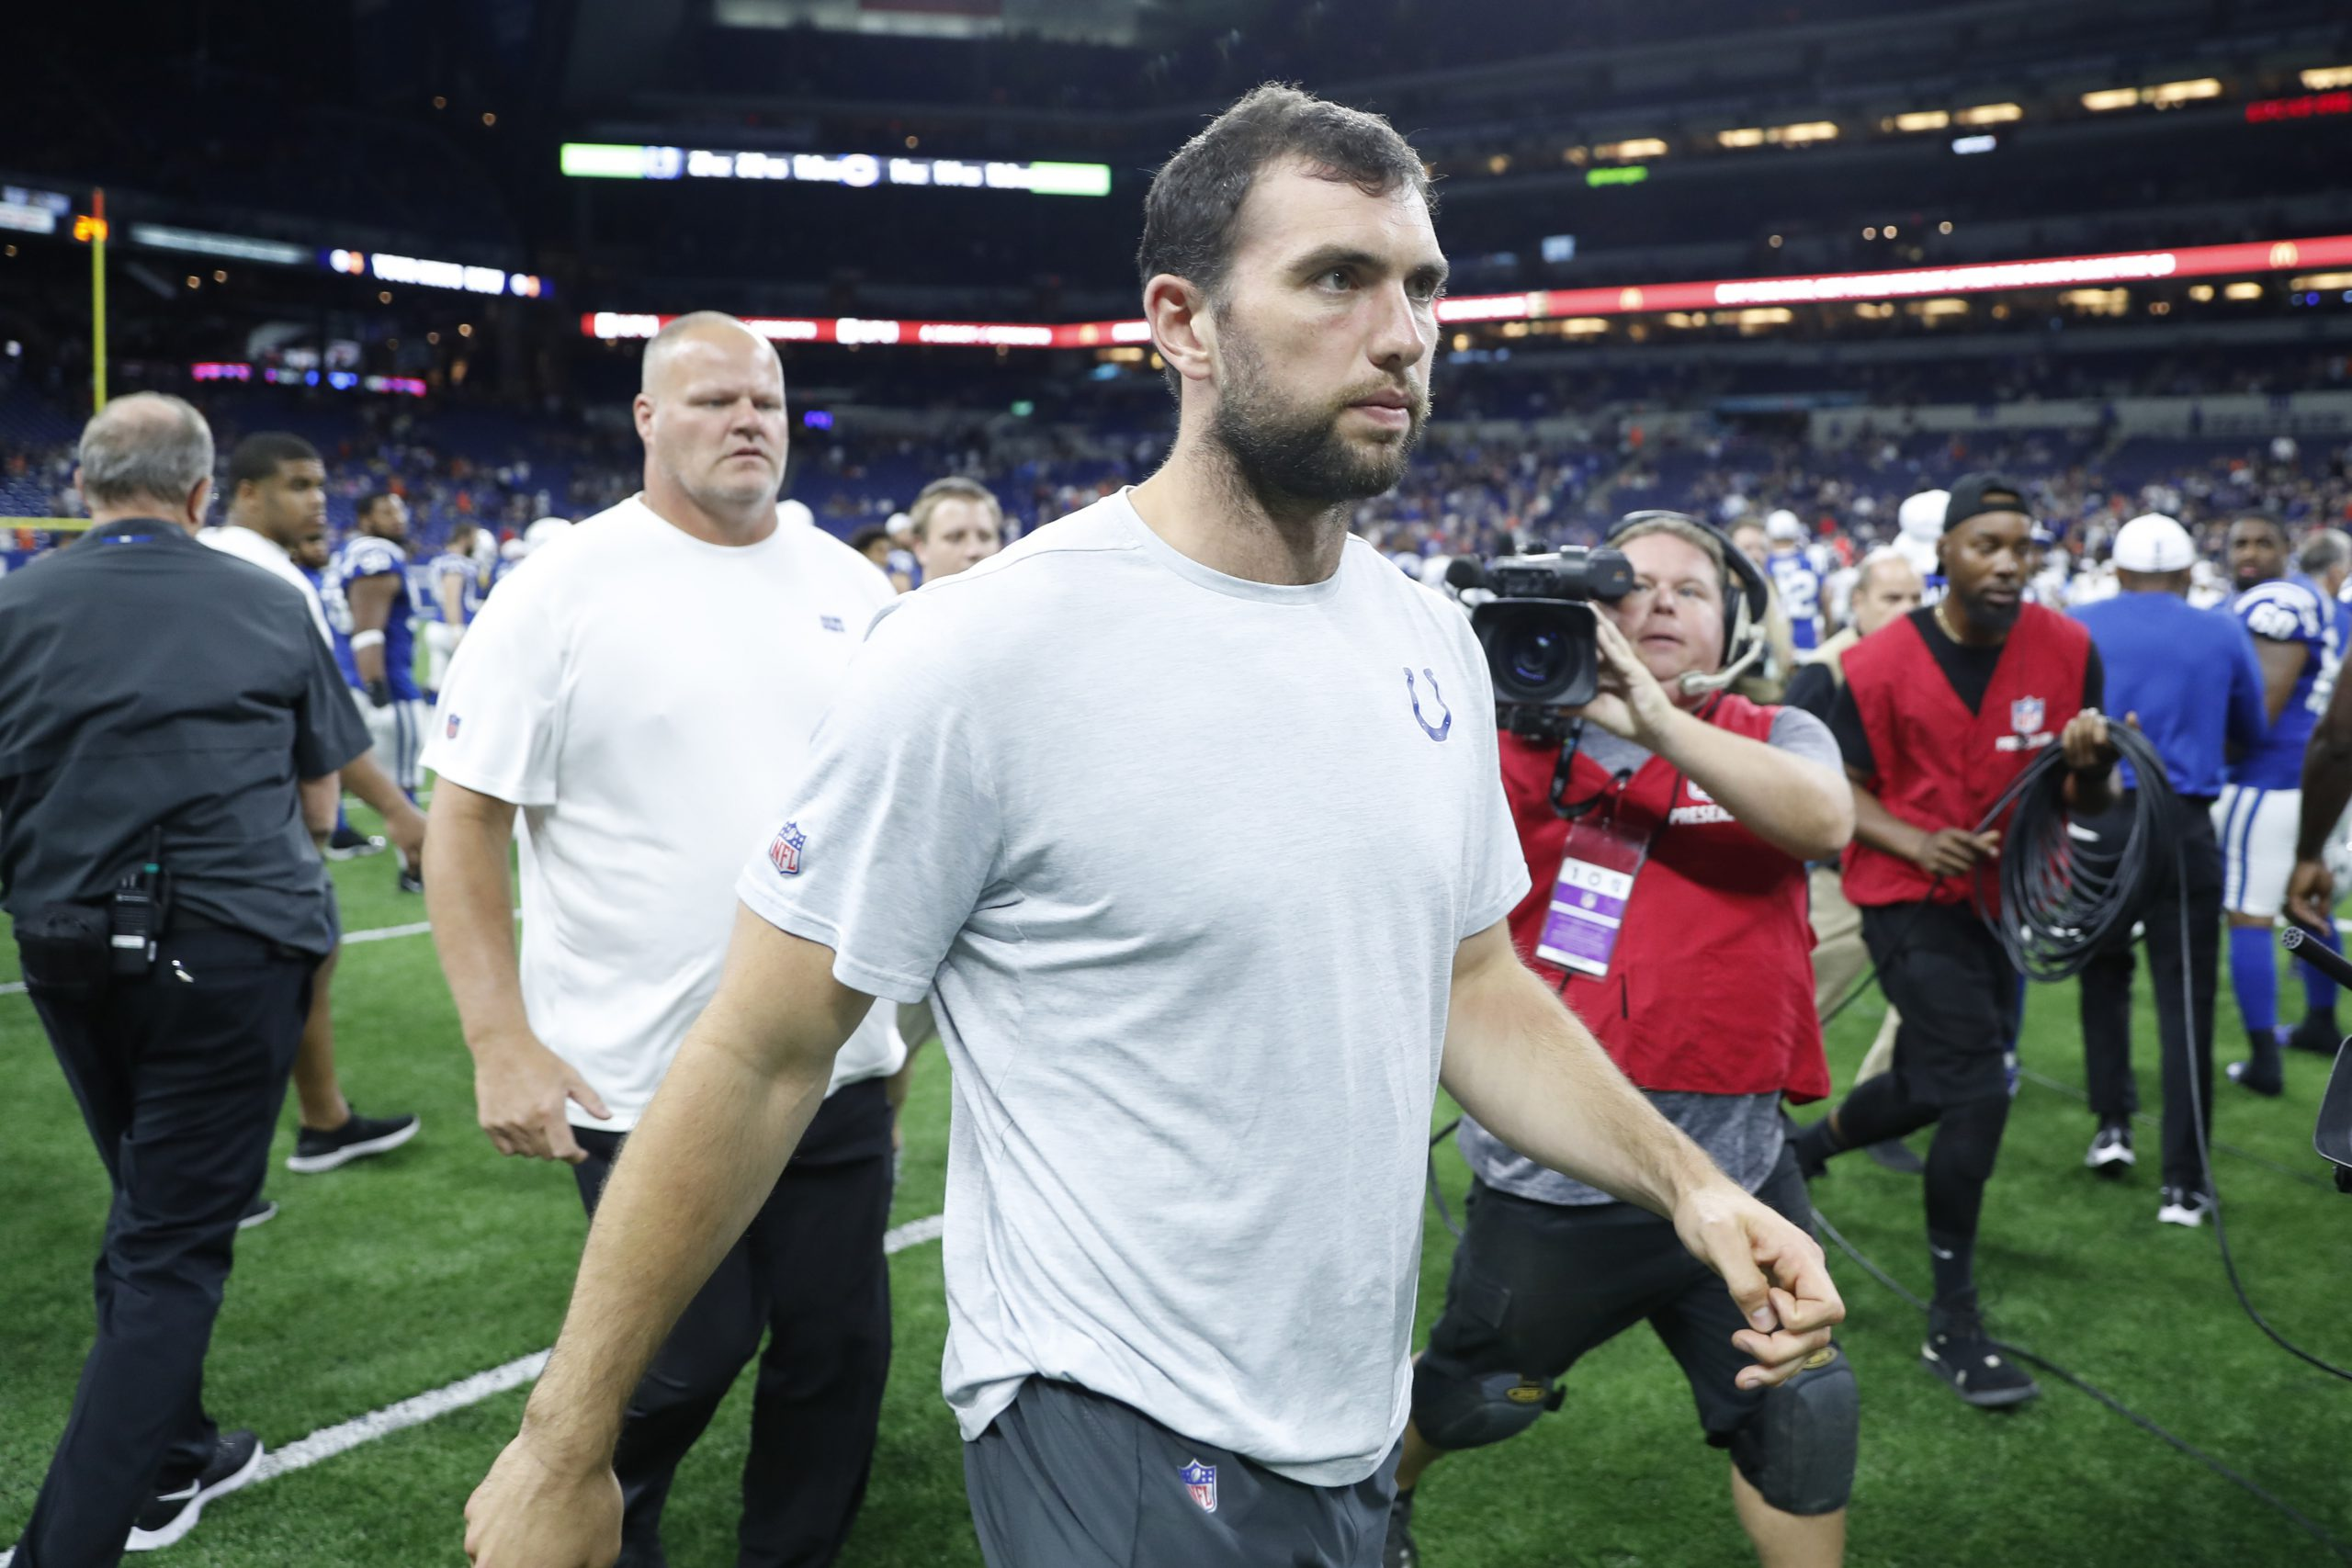 Aug 24, 2019; Indianapolis, IN, USA; Indianapolis Colts quarterback Andrew Luck walks off the field after the game against the Chicago Bears at Lucas Oil Stadium. Mandatory Credit: Brian Spurlock-USA TODAY Sports